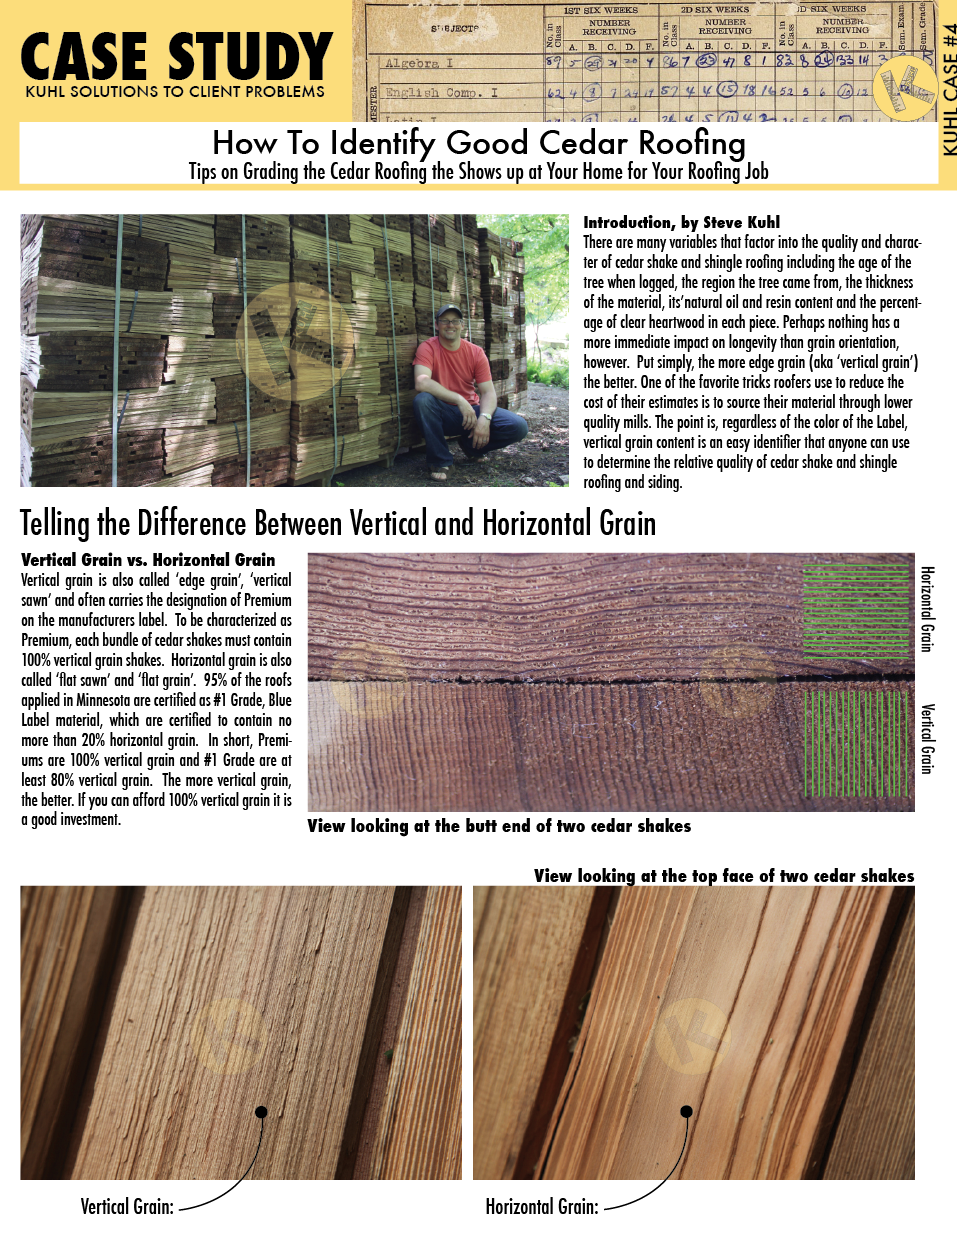 How To Identify Good Cedar Roofing